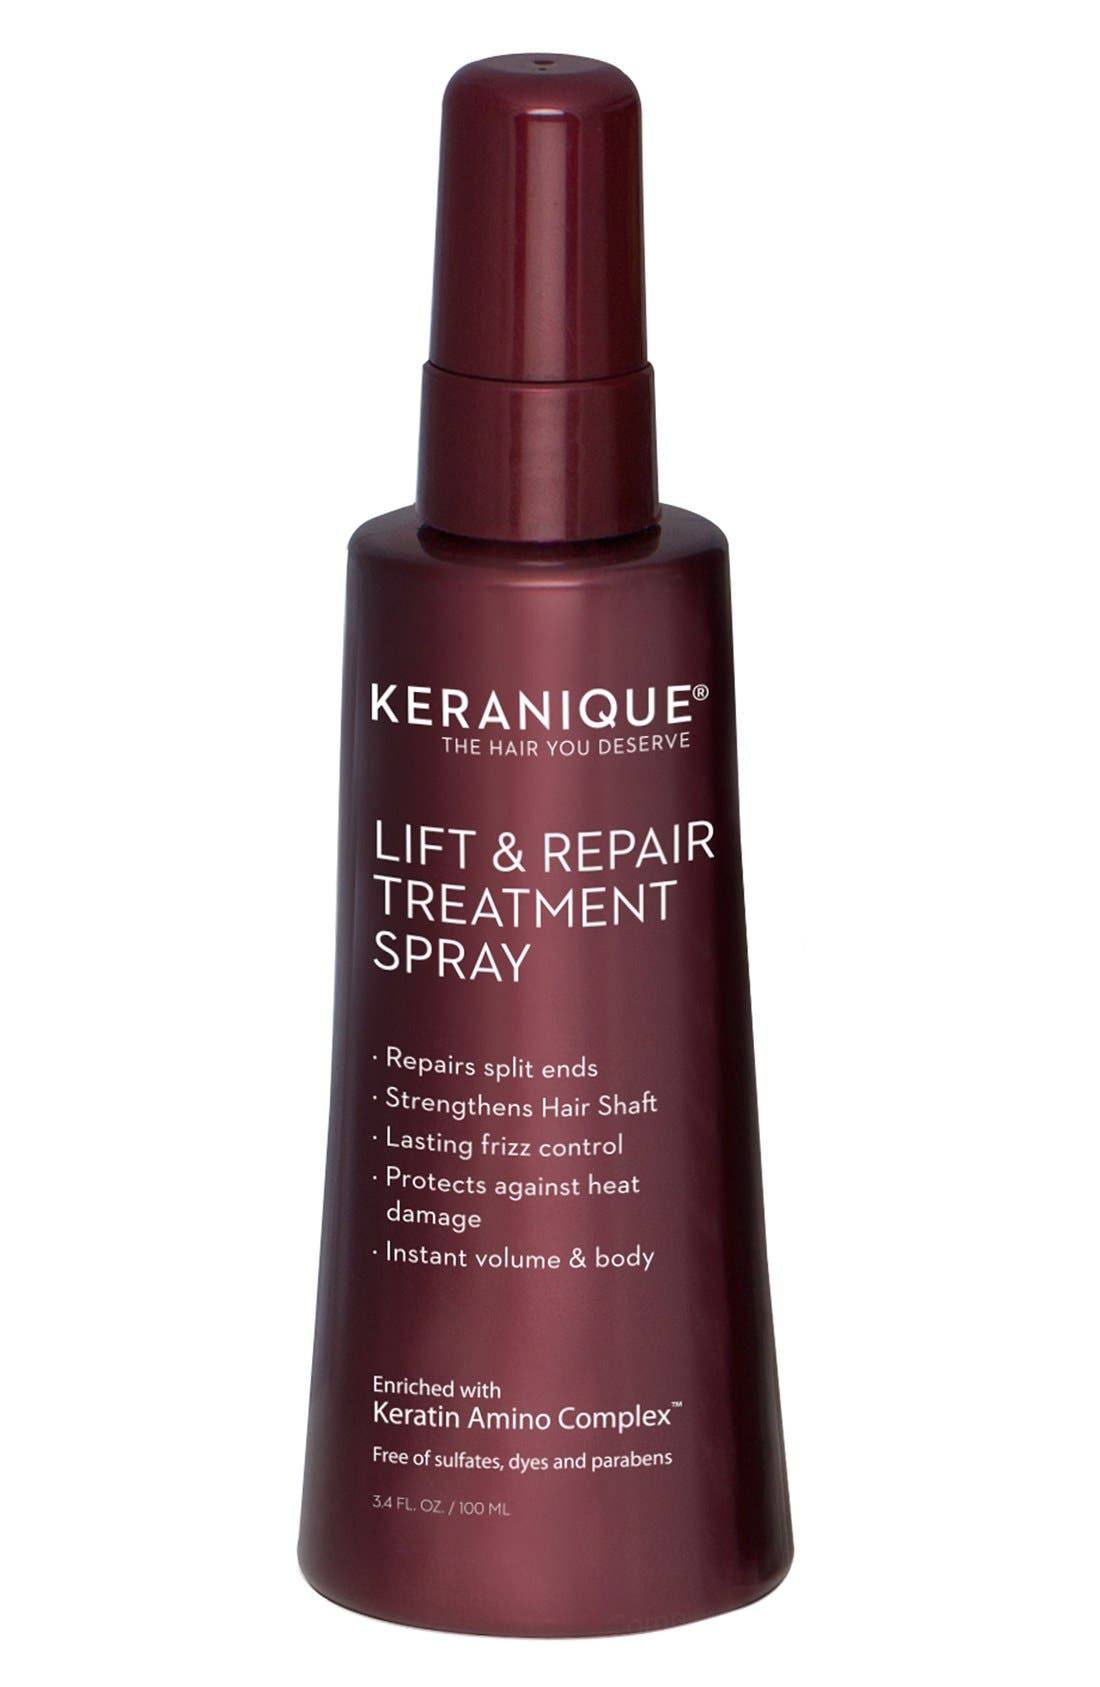 Keranique Lift & Repair Hair Treatment Spray